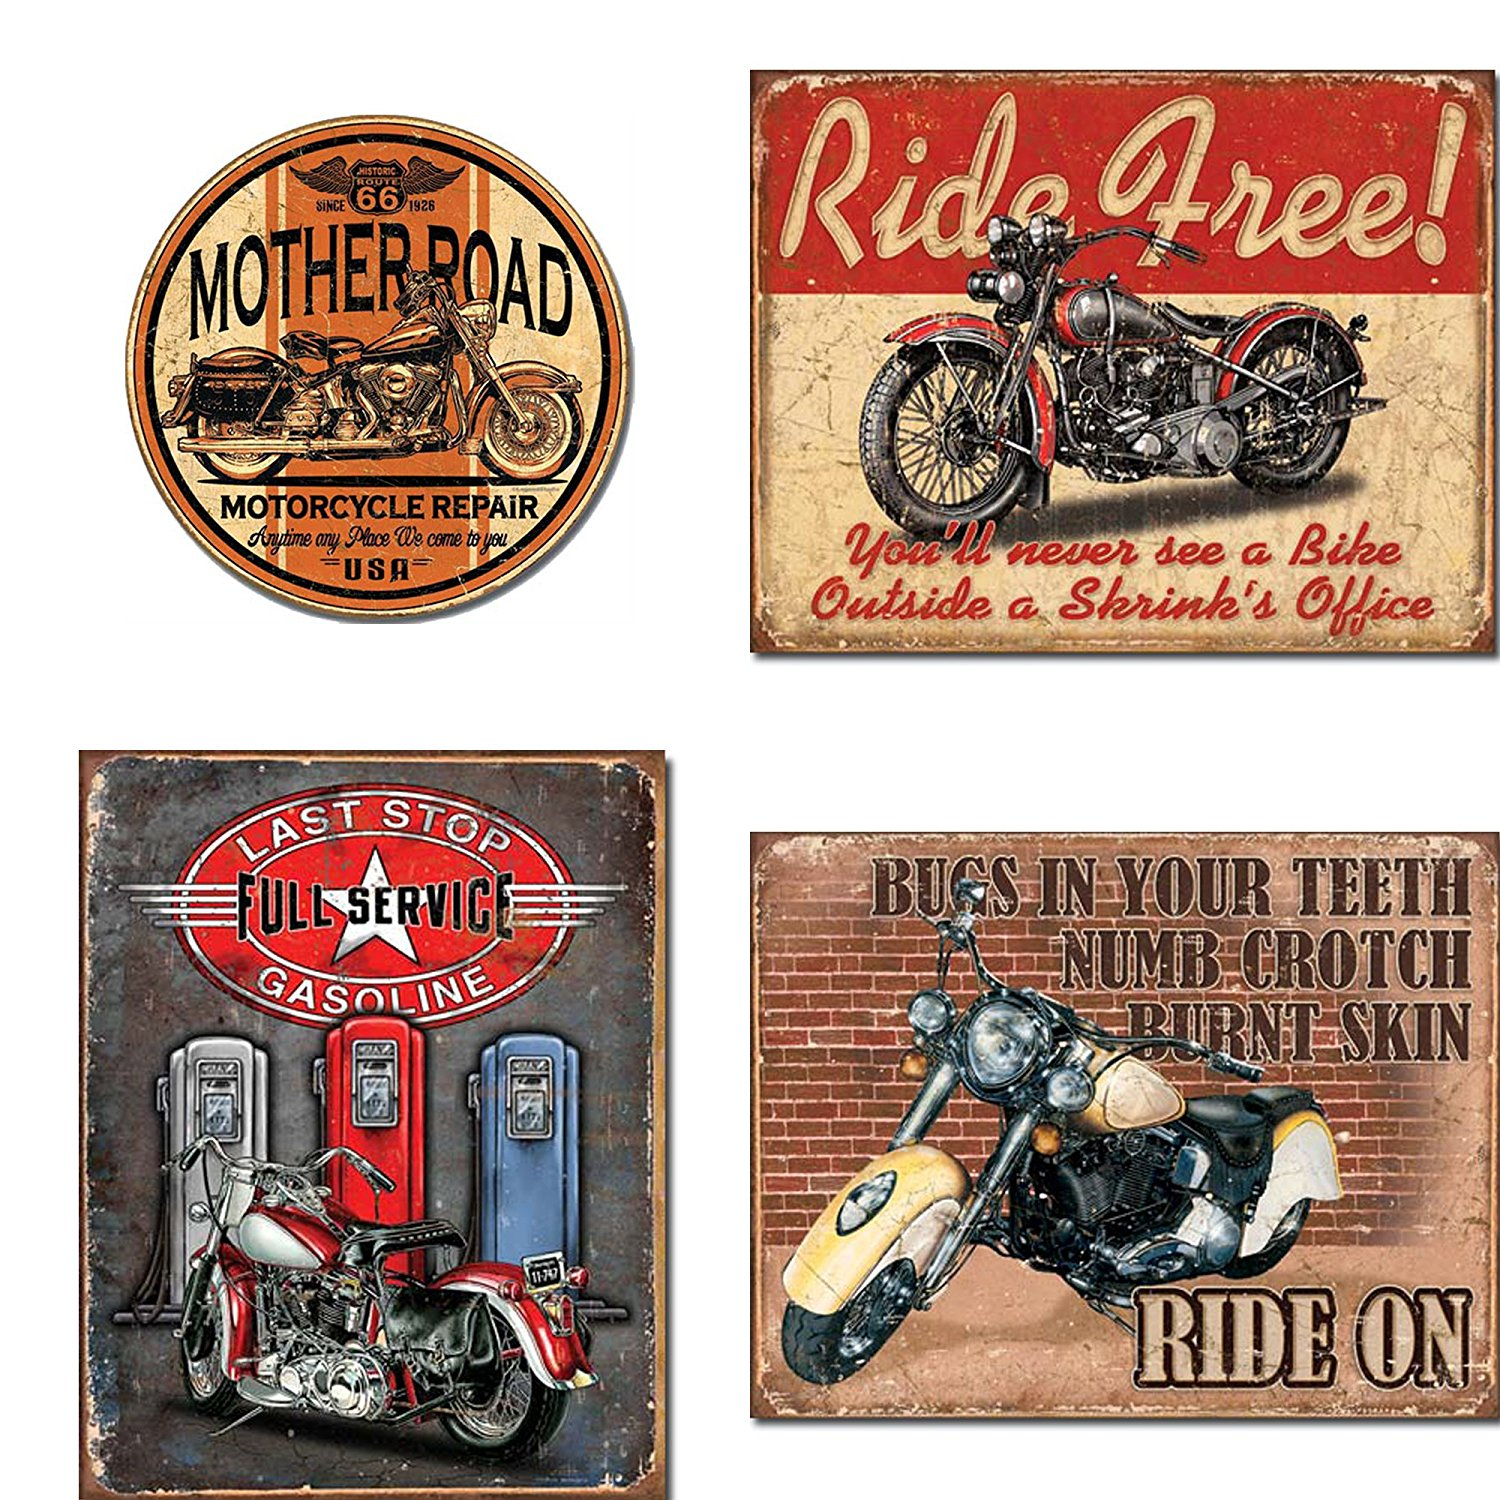 Motorcycle Tin Sign Bundle - Mother Road Motorcycle Repair, Ride Free, Last Stop Full Service Gasoline, Ride On